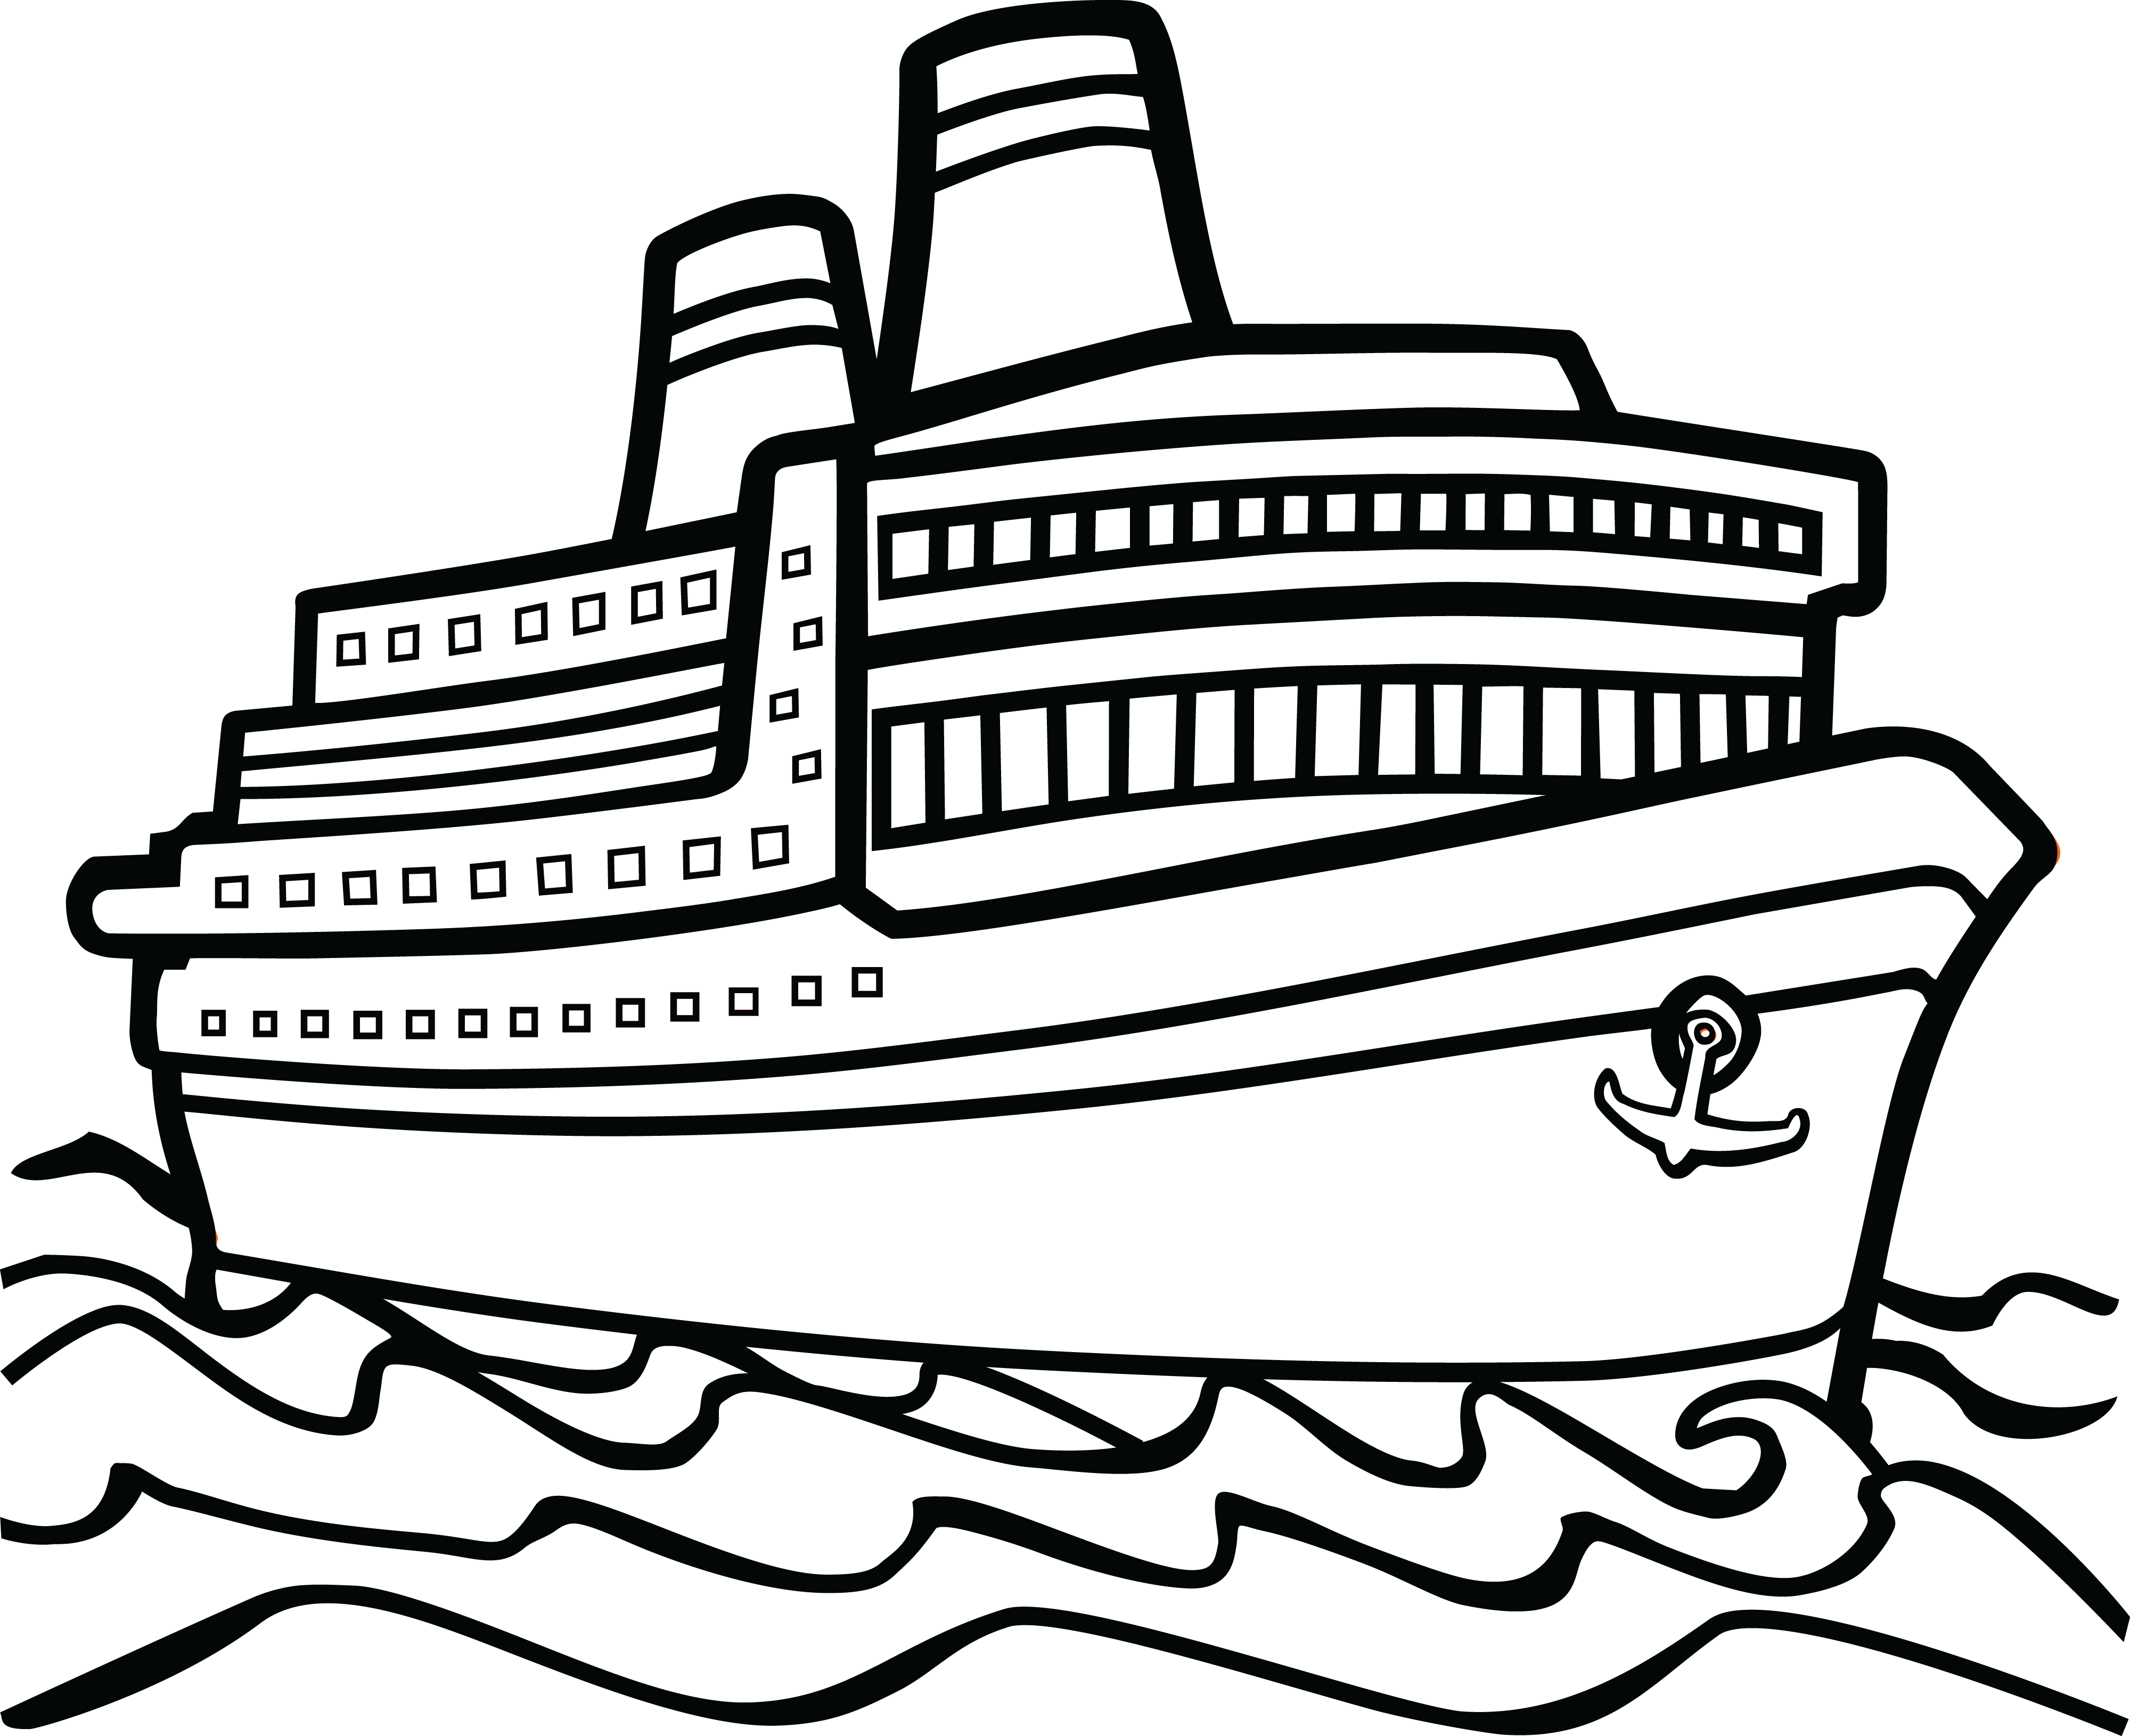 Boat clipart transportation. Free to use clip